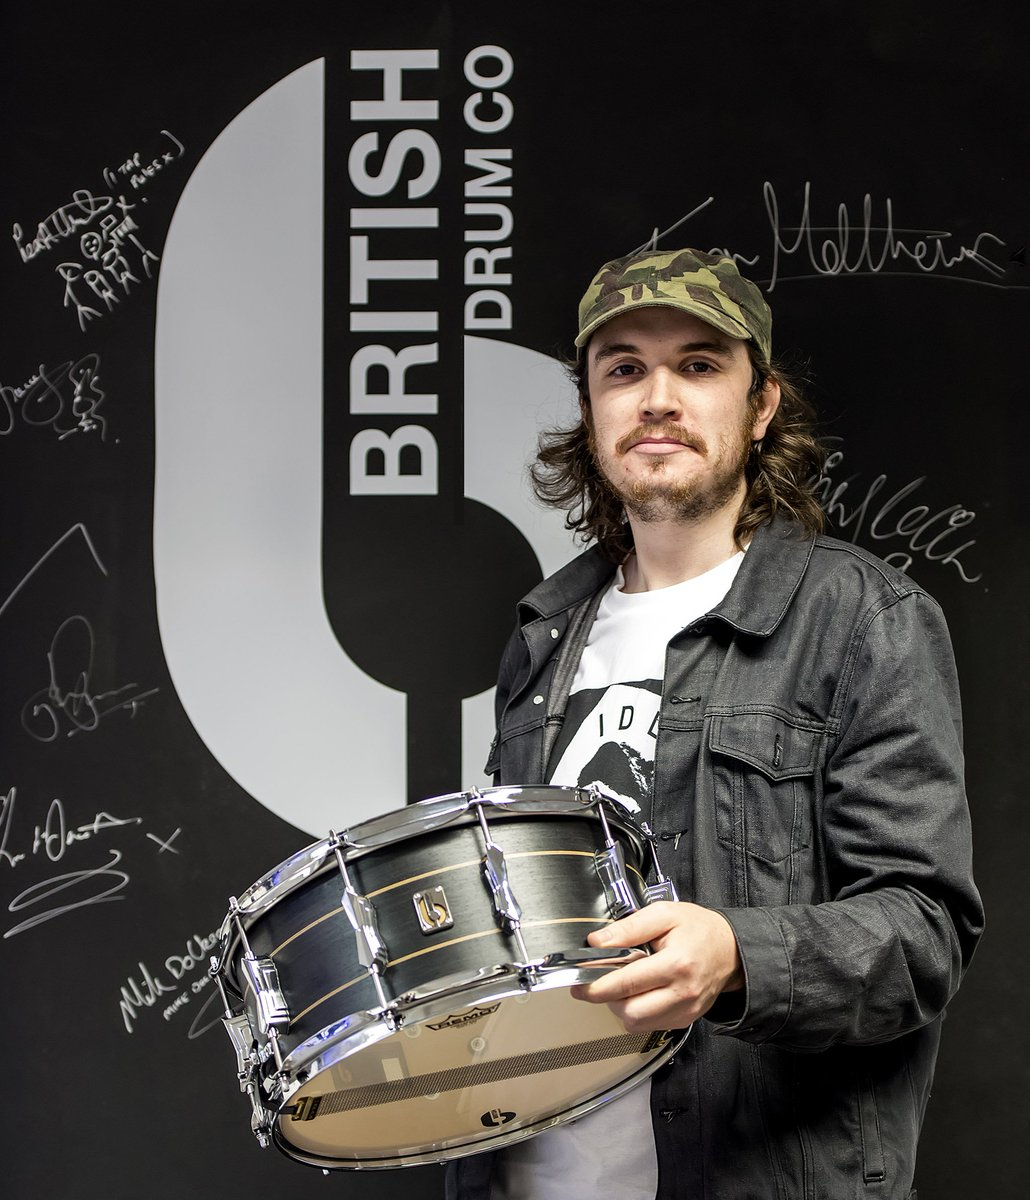 Asa from @ahcabbage popped in today to collect his new Merlin Snare. #drums #drummer #manufacturers #handmade<br>http://pic.twitter.com/y4HG0HSuDU